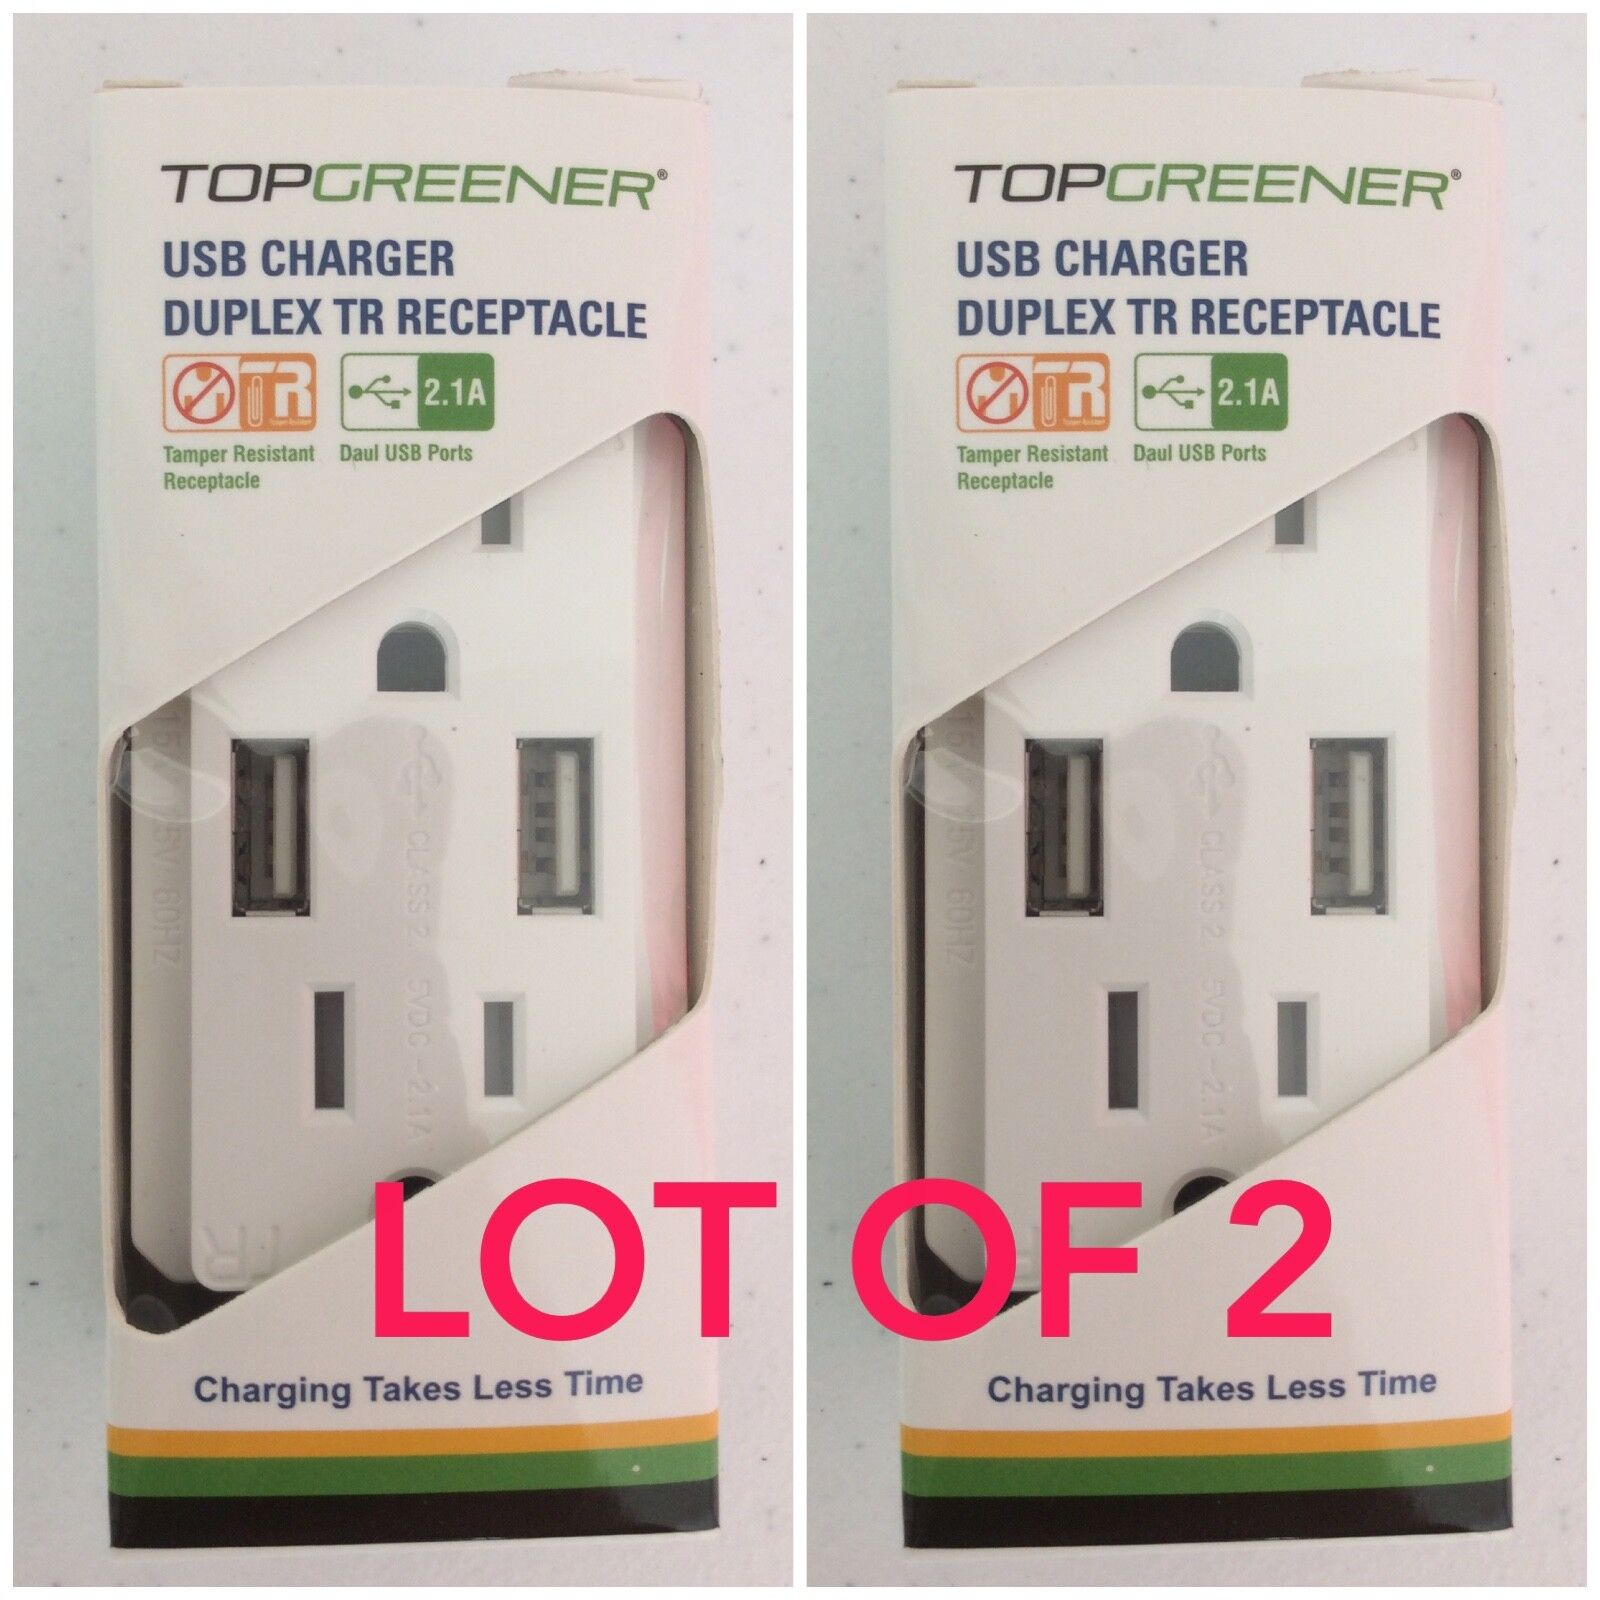 Top Greener TU2152A-W Dual USB Outlet/Outlet with USB ports,